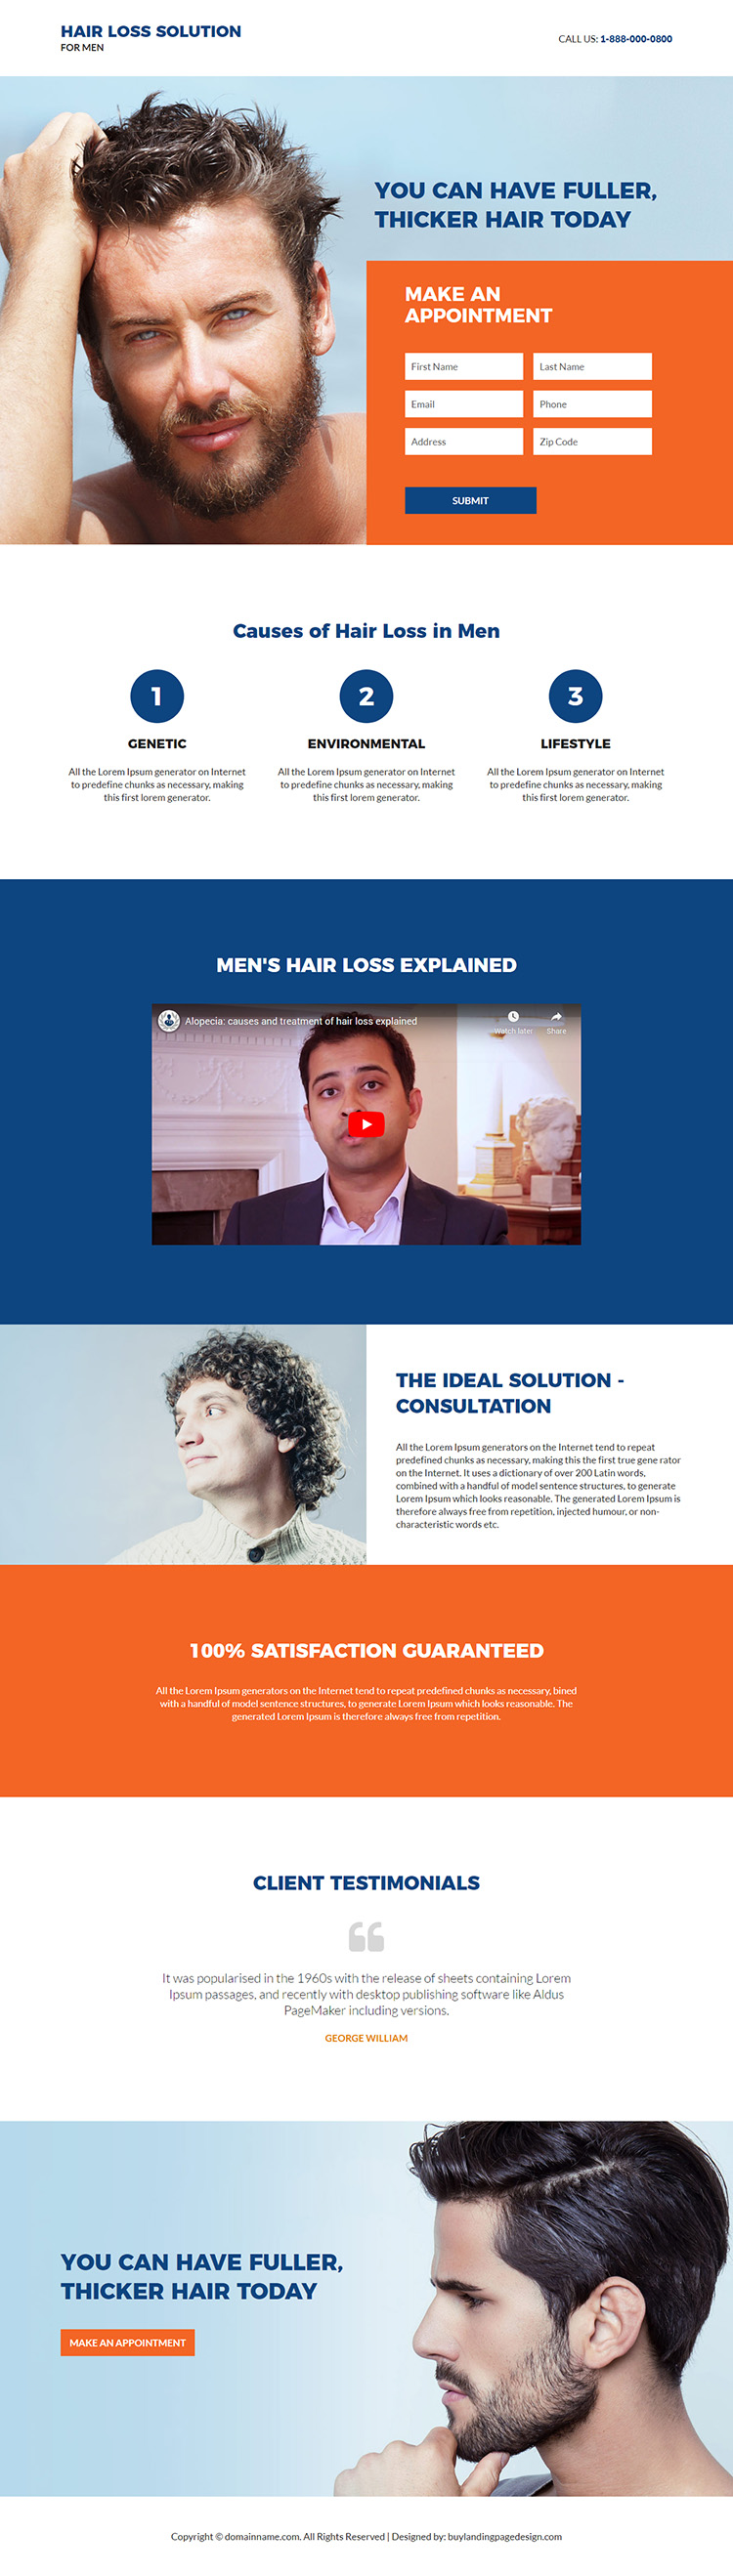 hair loss solution for men responsive landing page